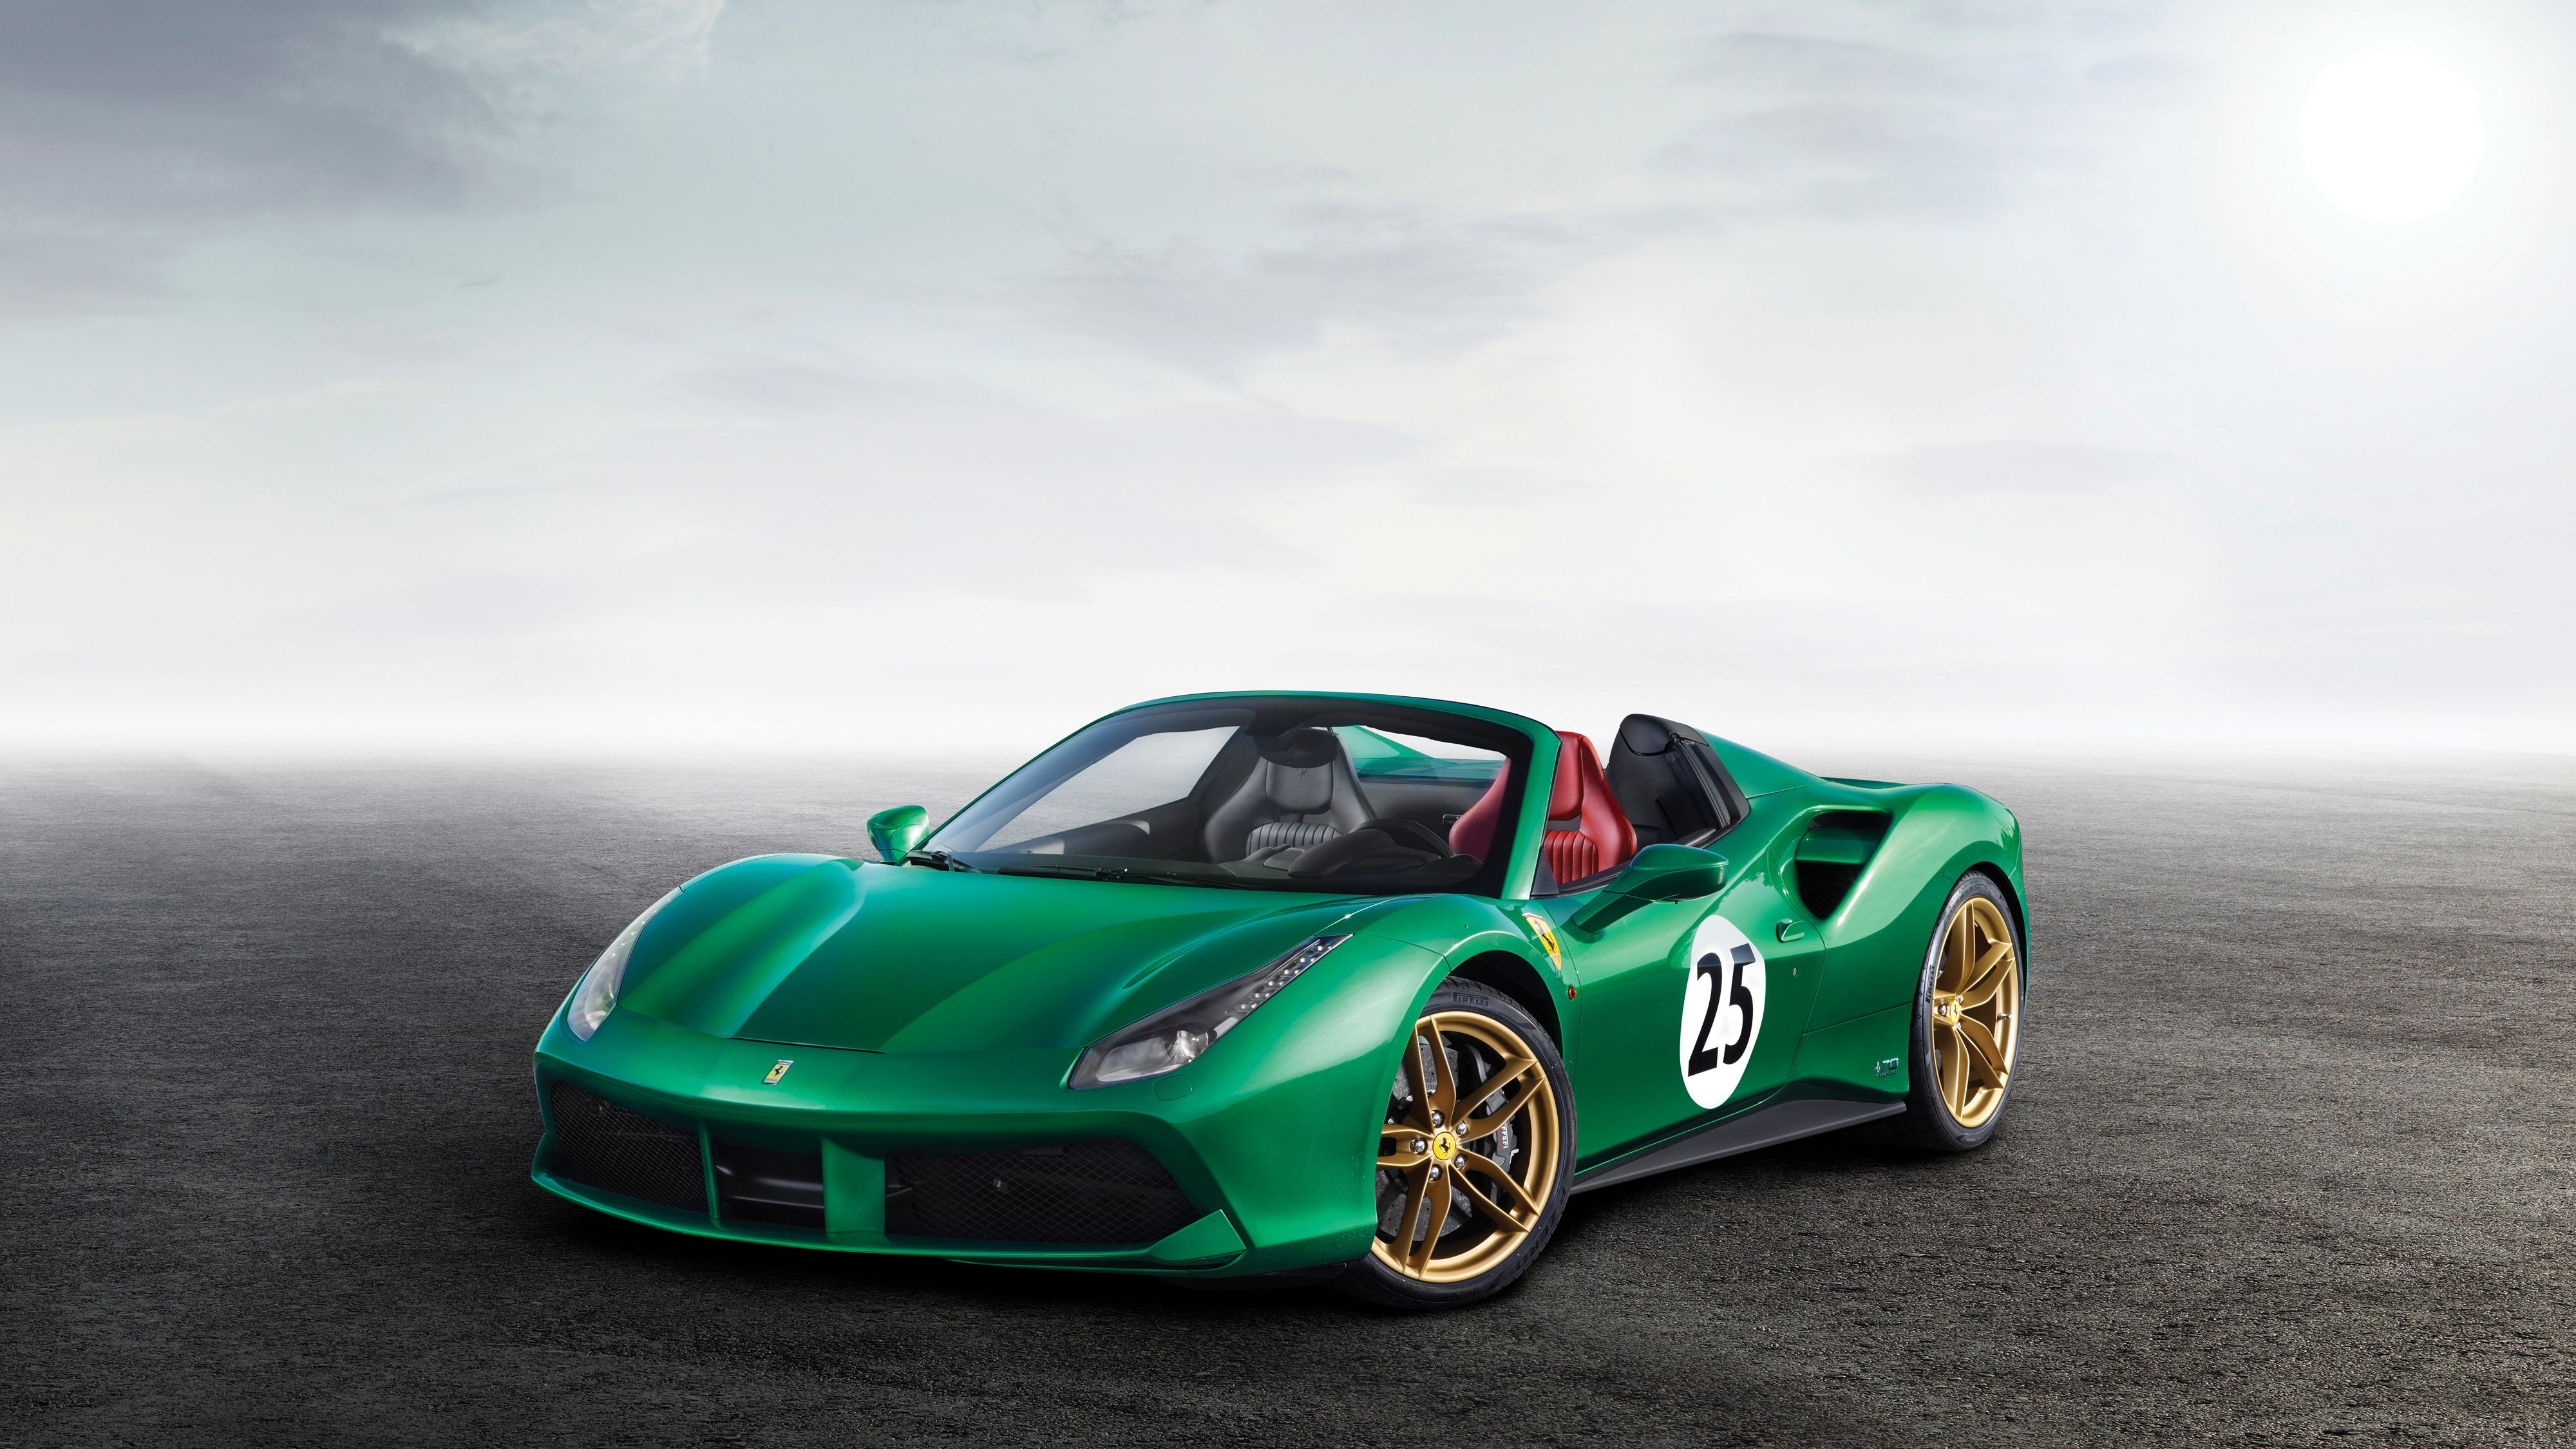 2017 Ferrari 488 Spider The Green Jewel 4K Wallpapers